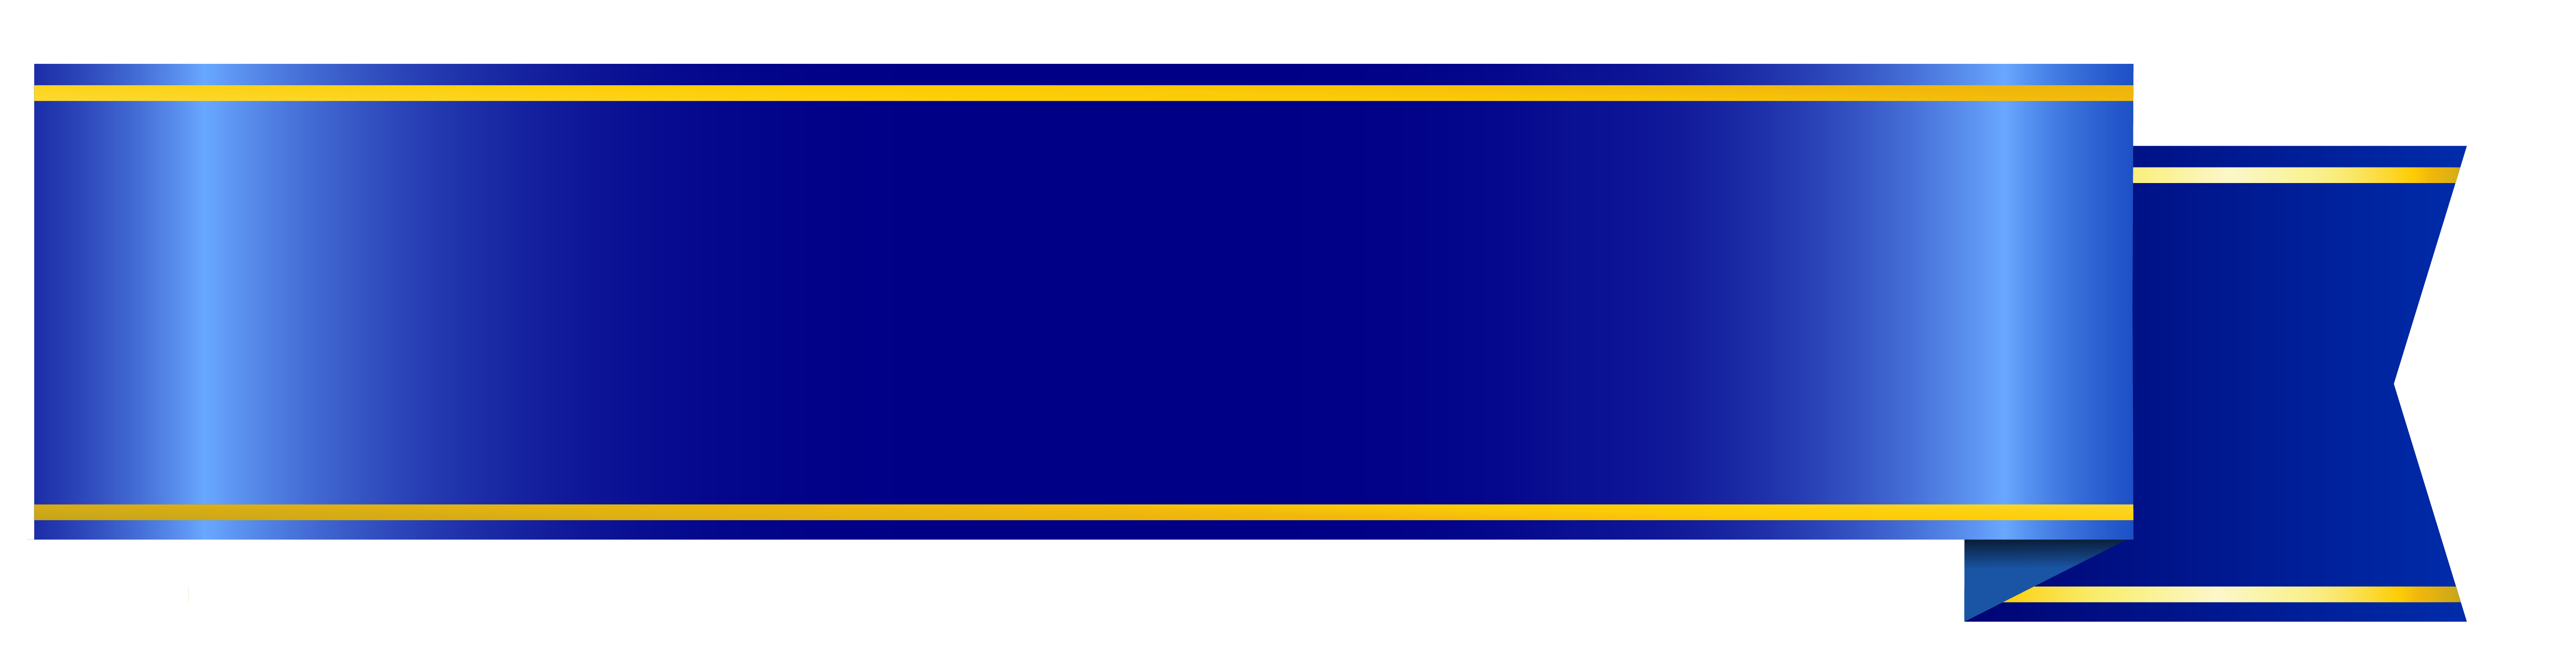 Blue Banner Png Clipart Picture Image